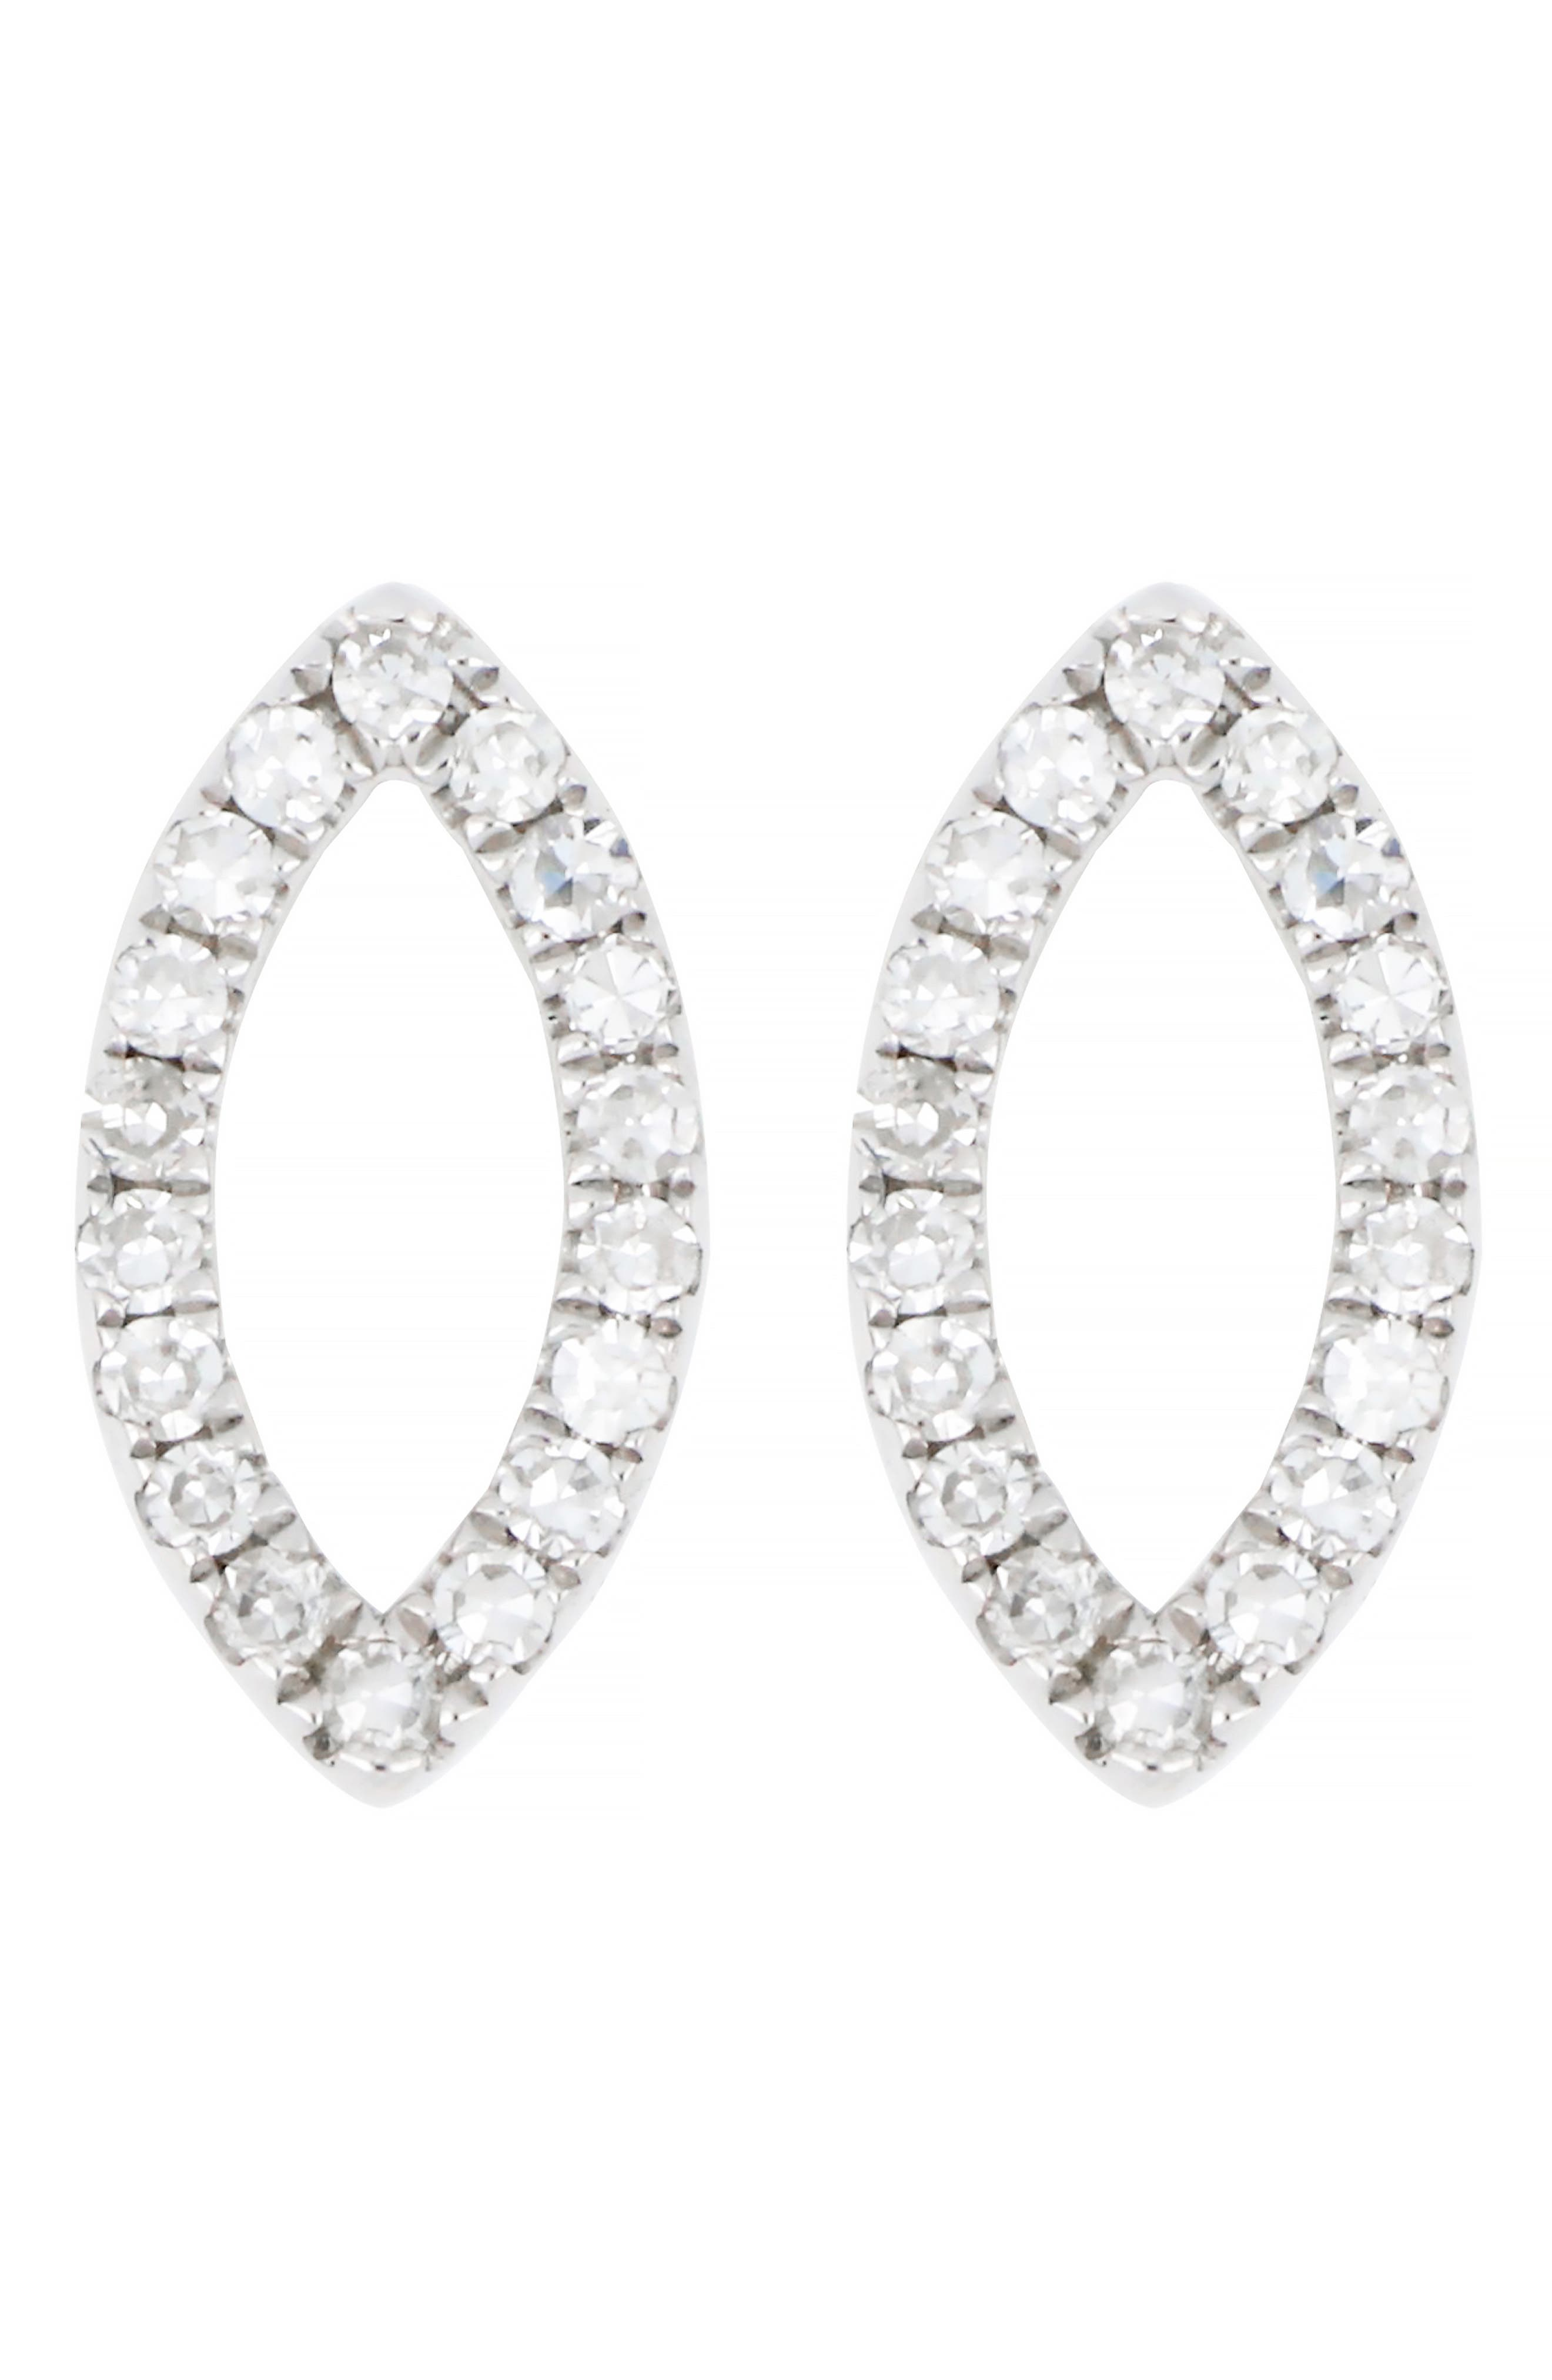 CARRIERE JEWELRY, Carrière Diamond Marquise Stud Earrings, Main thumbnail 1, color, 040